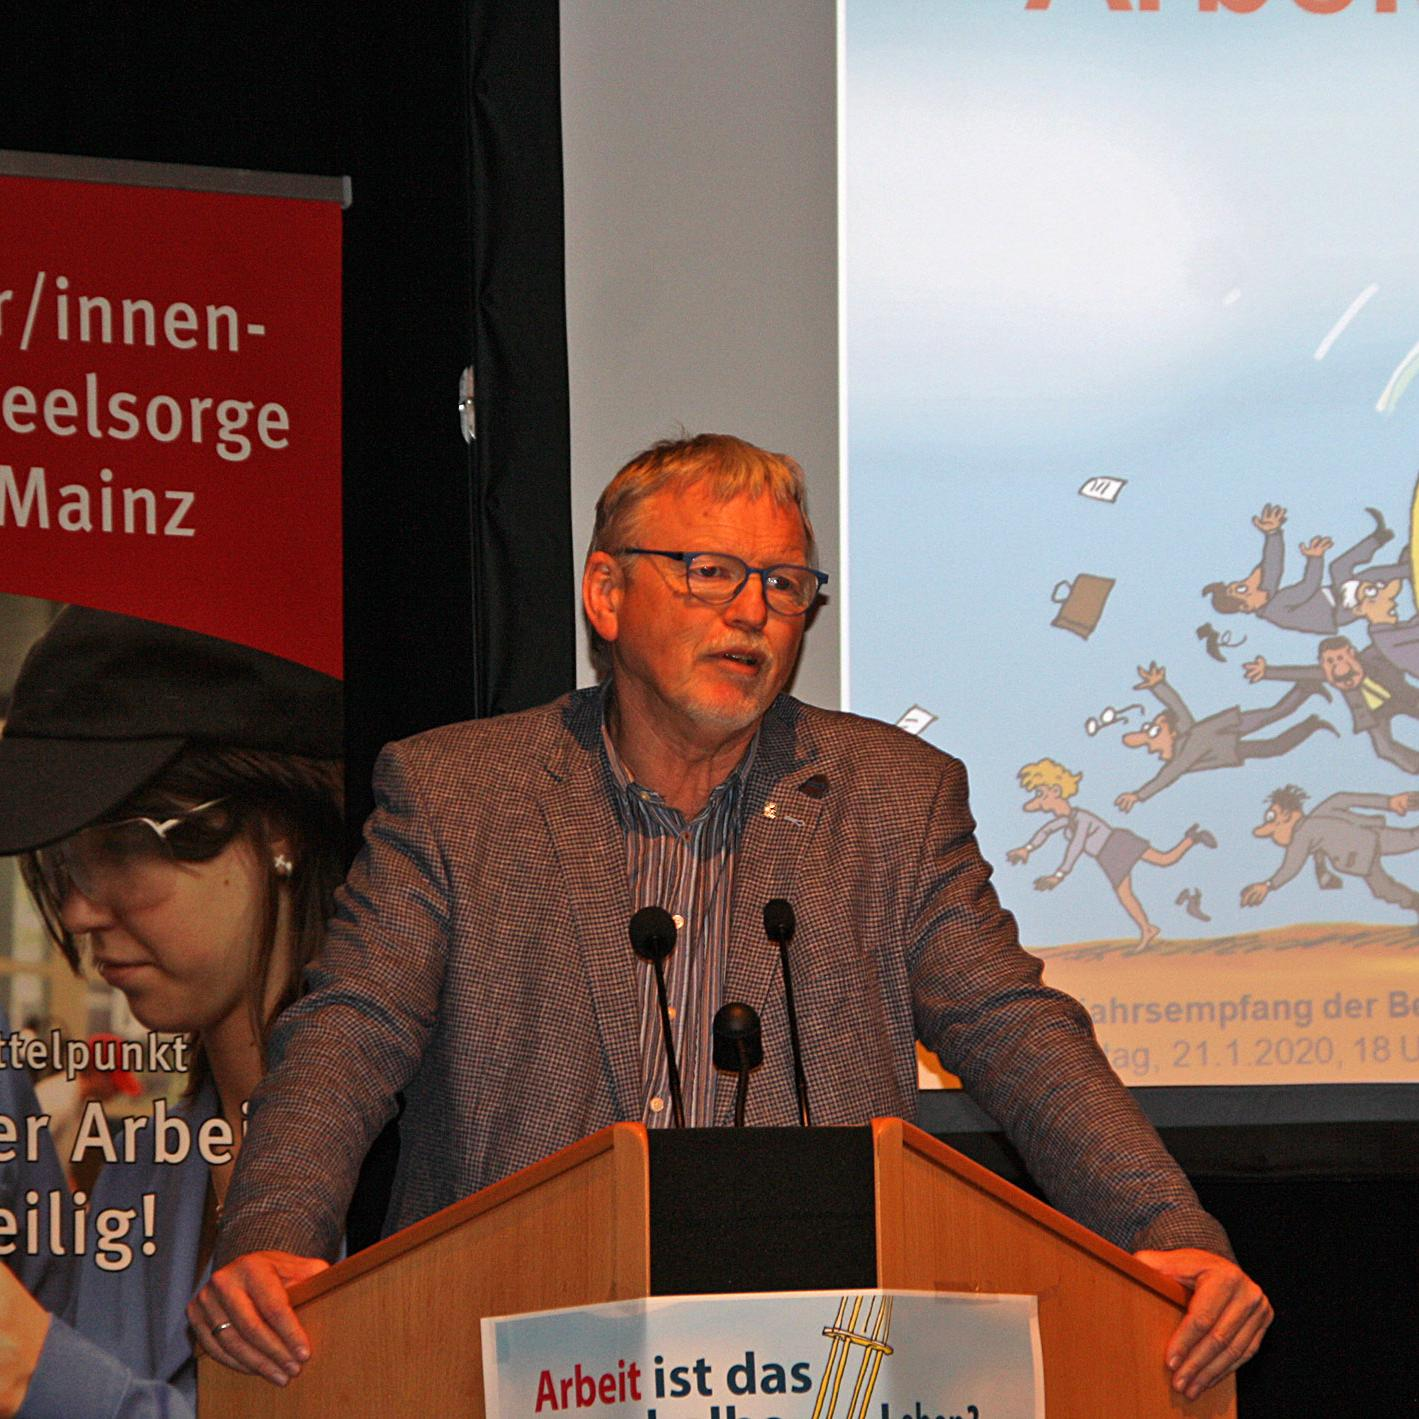 Referent Manfred Böhm (c) bss